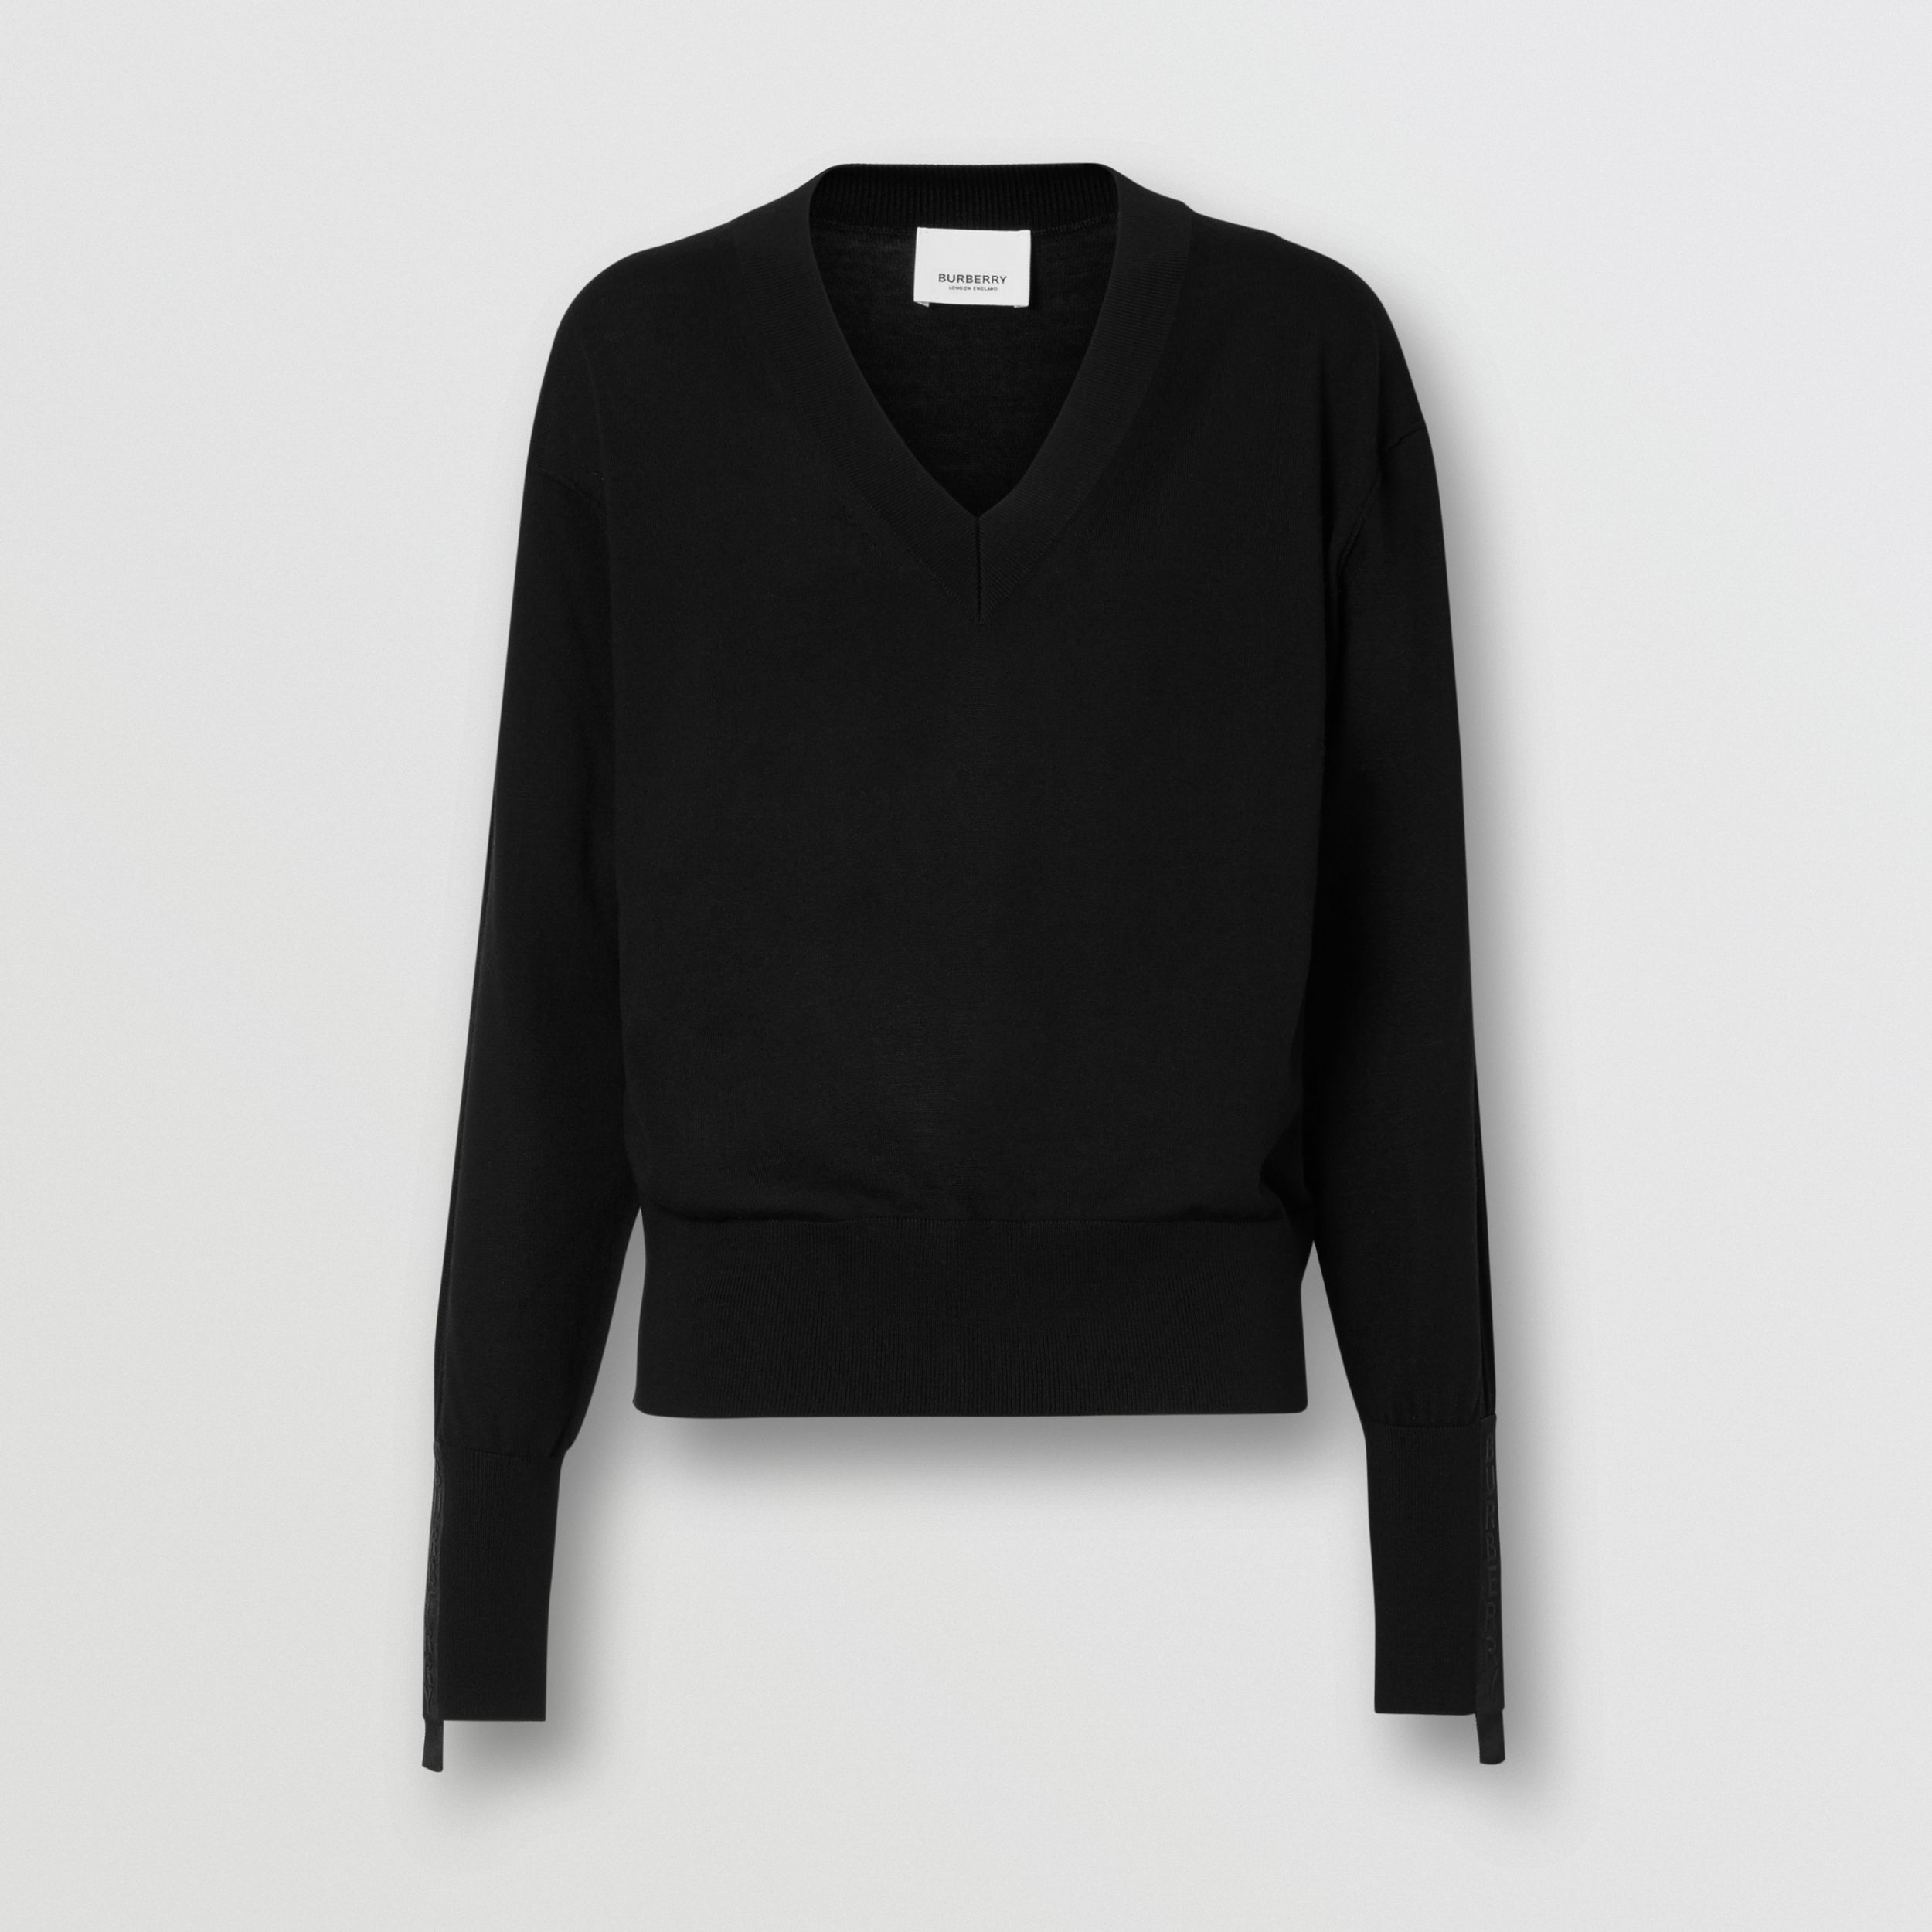 Logo Detail Merino Wool Silk Sweater in Black - Women | Burberry - 4